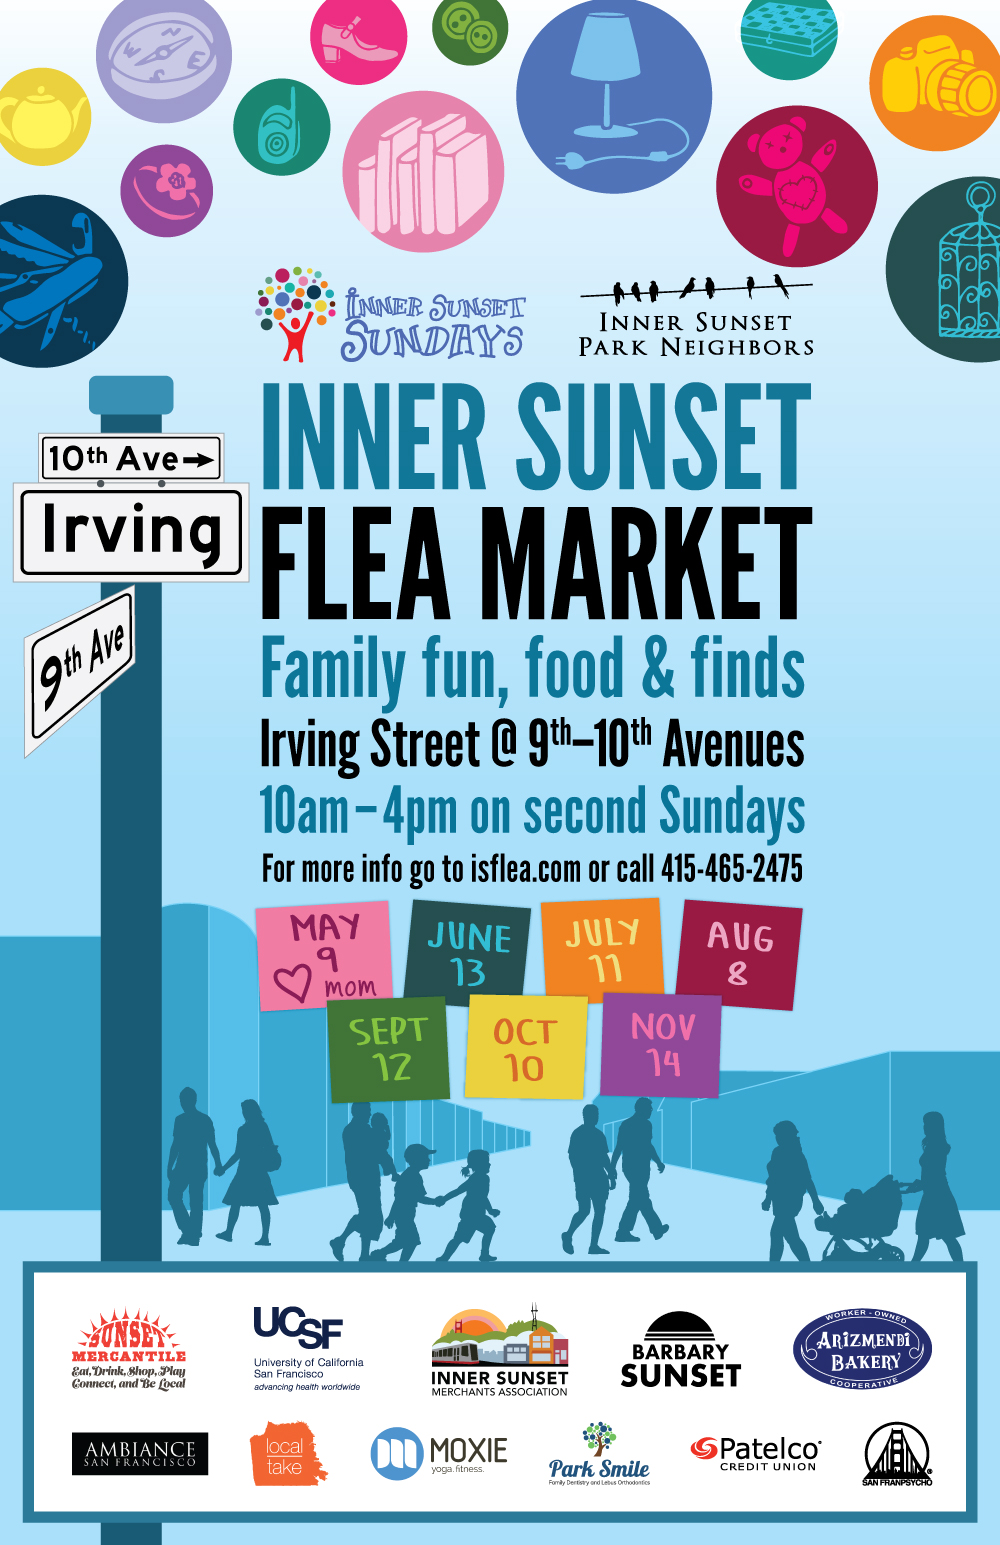 INNER SUNSET FLEA MARKET | Family fun, food & finds Irving Street @ 9th–10th Avenues, 10am–4pm on second Sundays | For more info go to isflea.com or call 415-465-2475